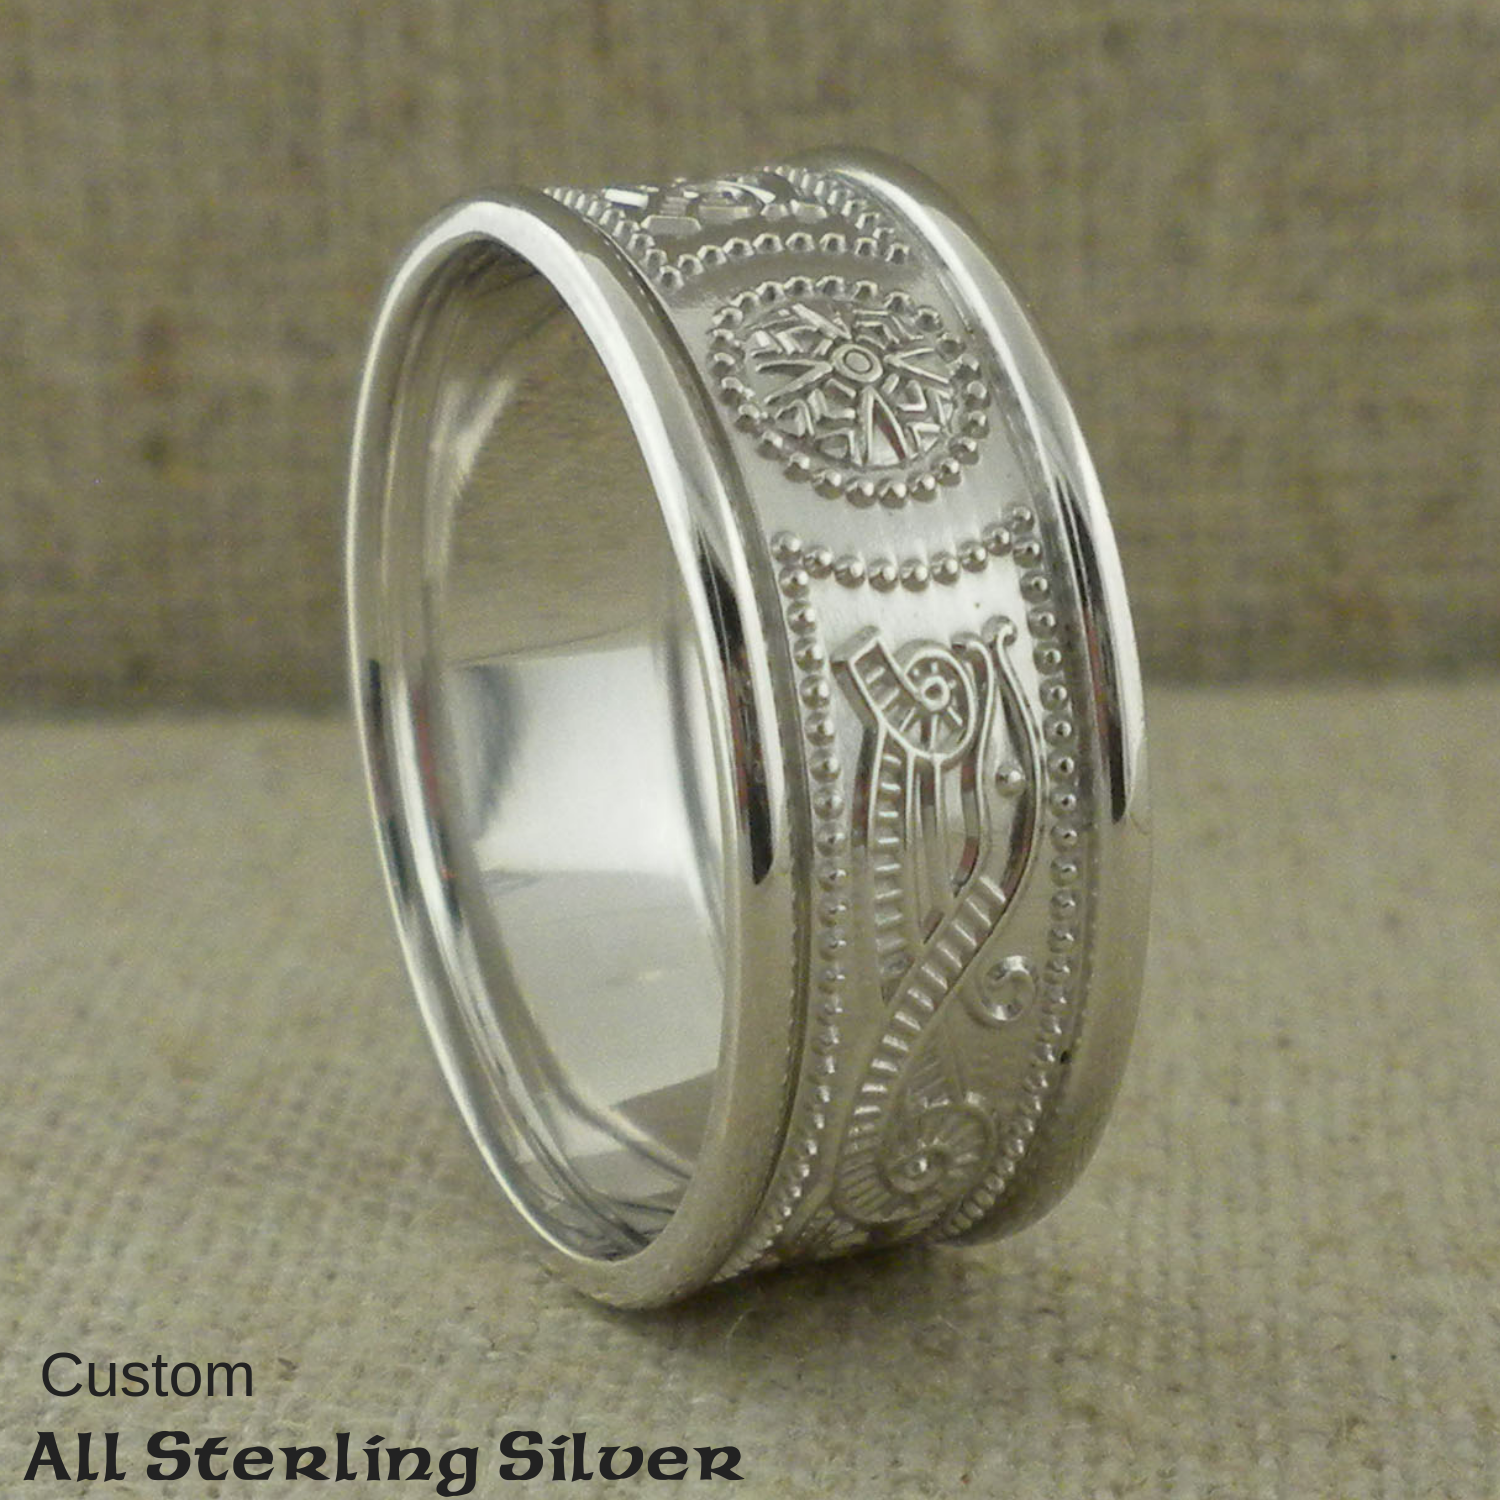 All Sterling Silver as a custom Order - Contact us for a quote.